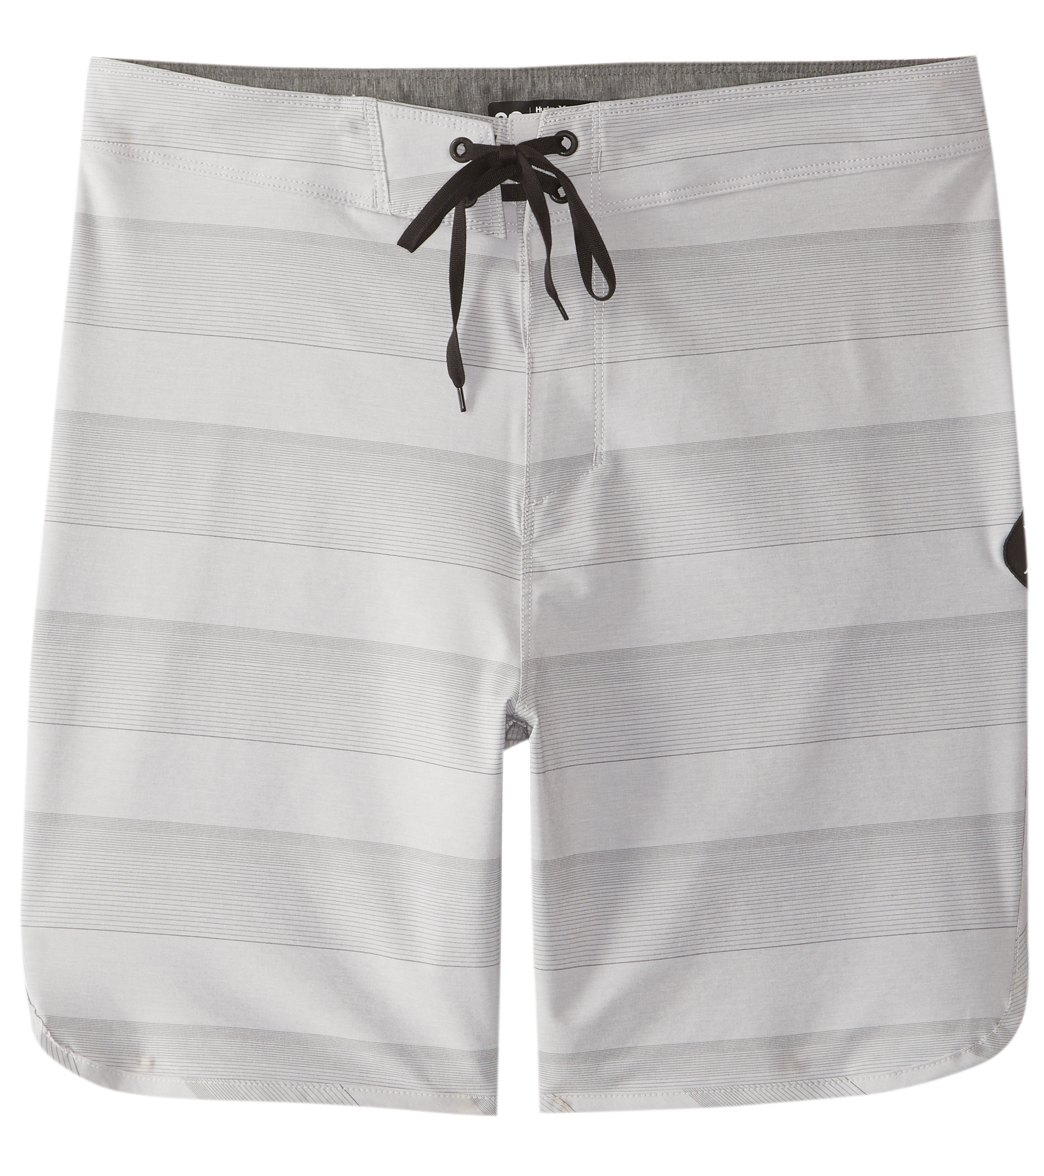 37f395c7e3 Hurley Men's Phantom Strike Boardshort